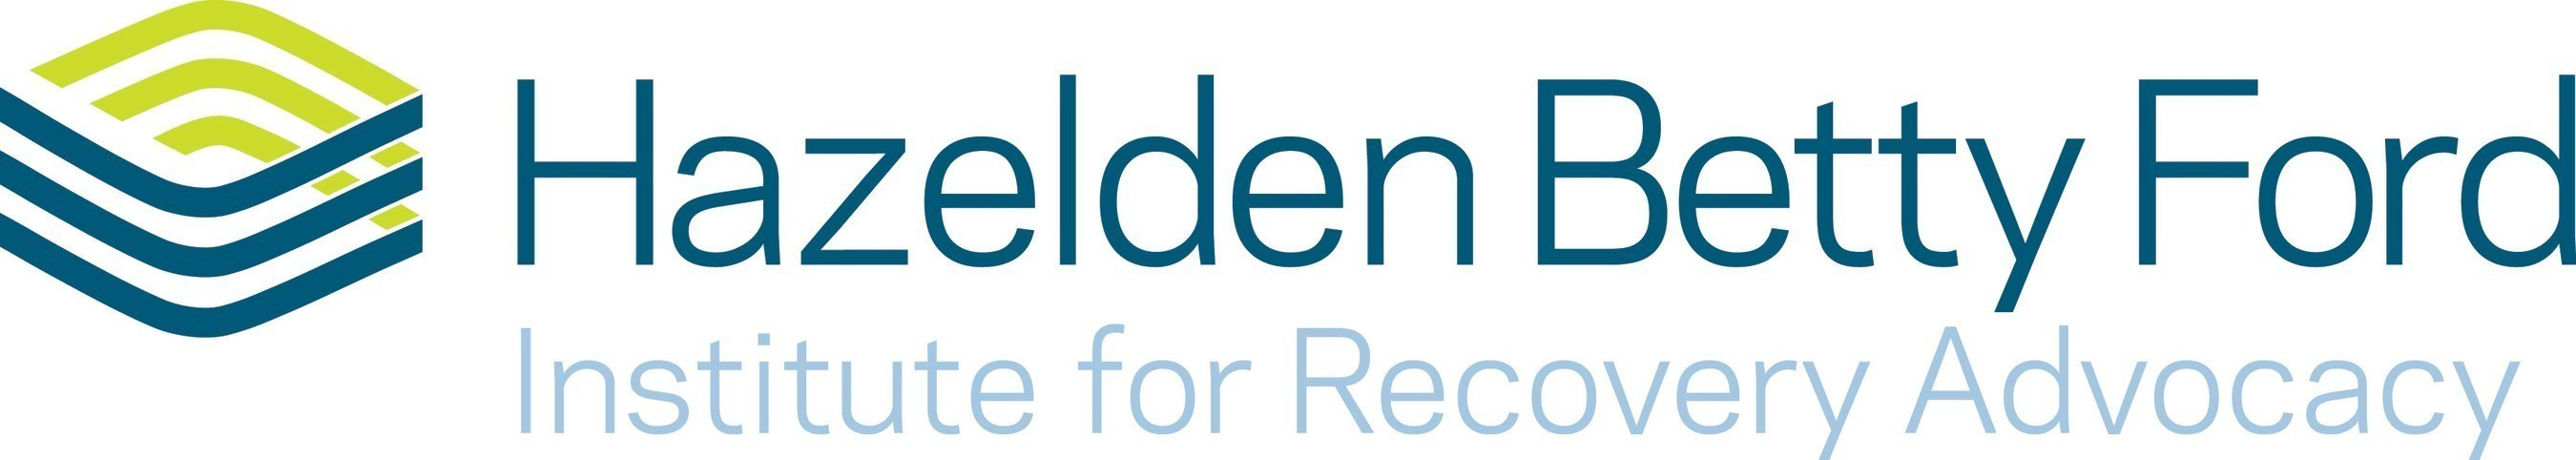 Hazelden Betty Ford Institute for Recovery Advocacy logo